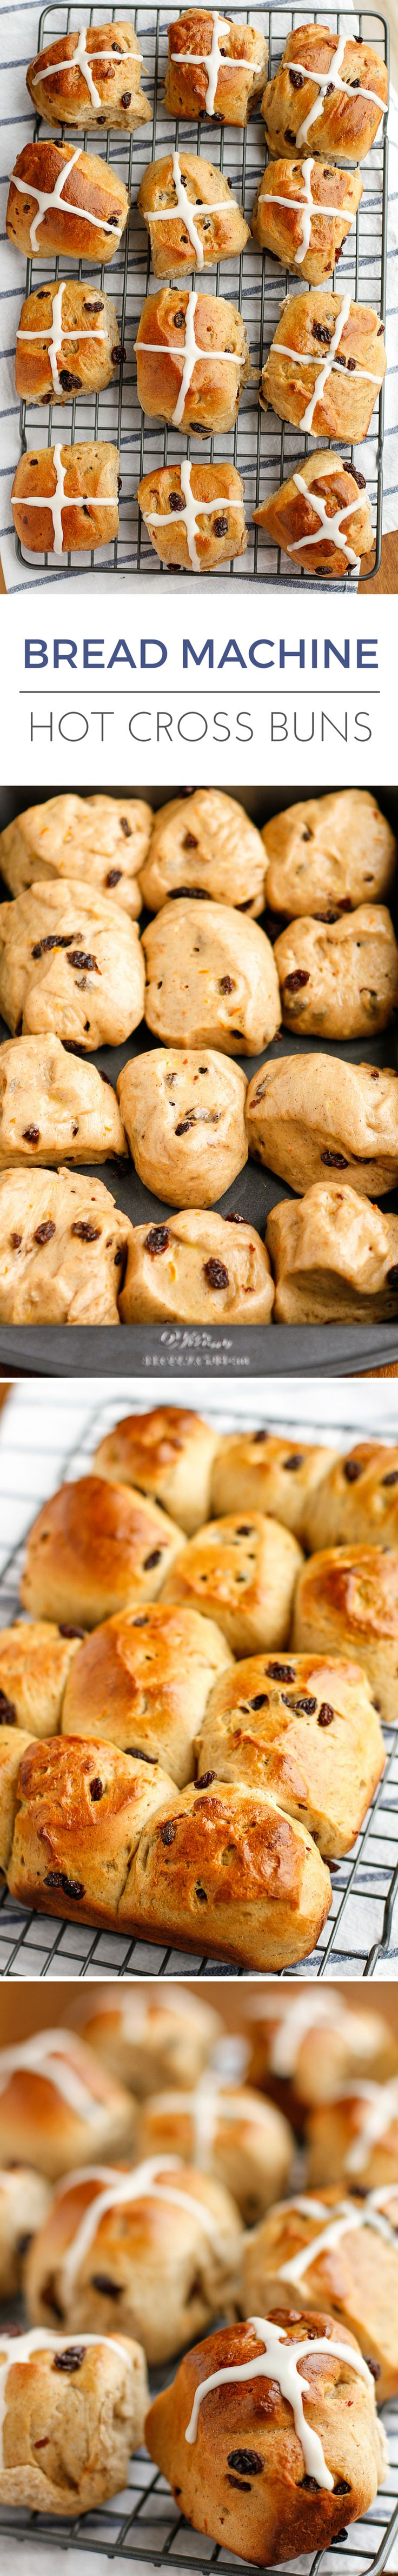 Hot Cross Buns Recipe -- Hot cross buns are an Easter tradition, but they're delicious any time, especially with this simple and easy bread machine method! | via @unsophisticook on unsophisticook.com